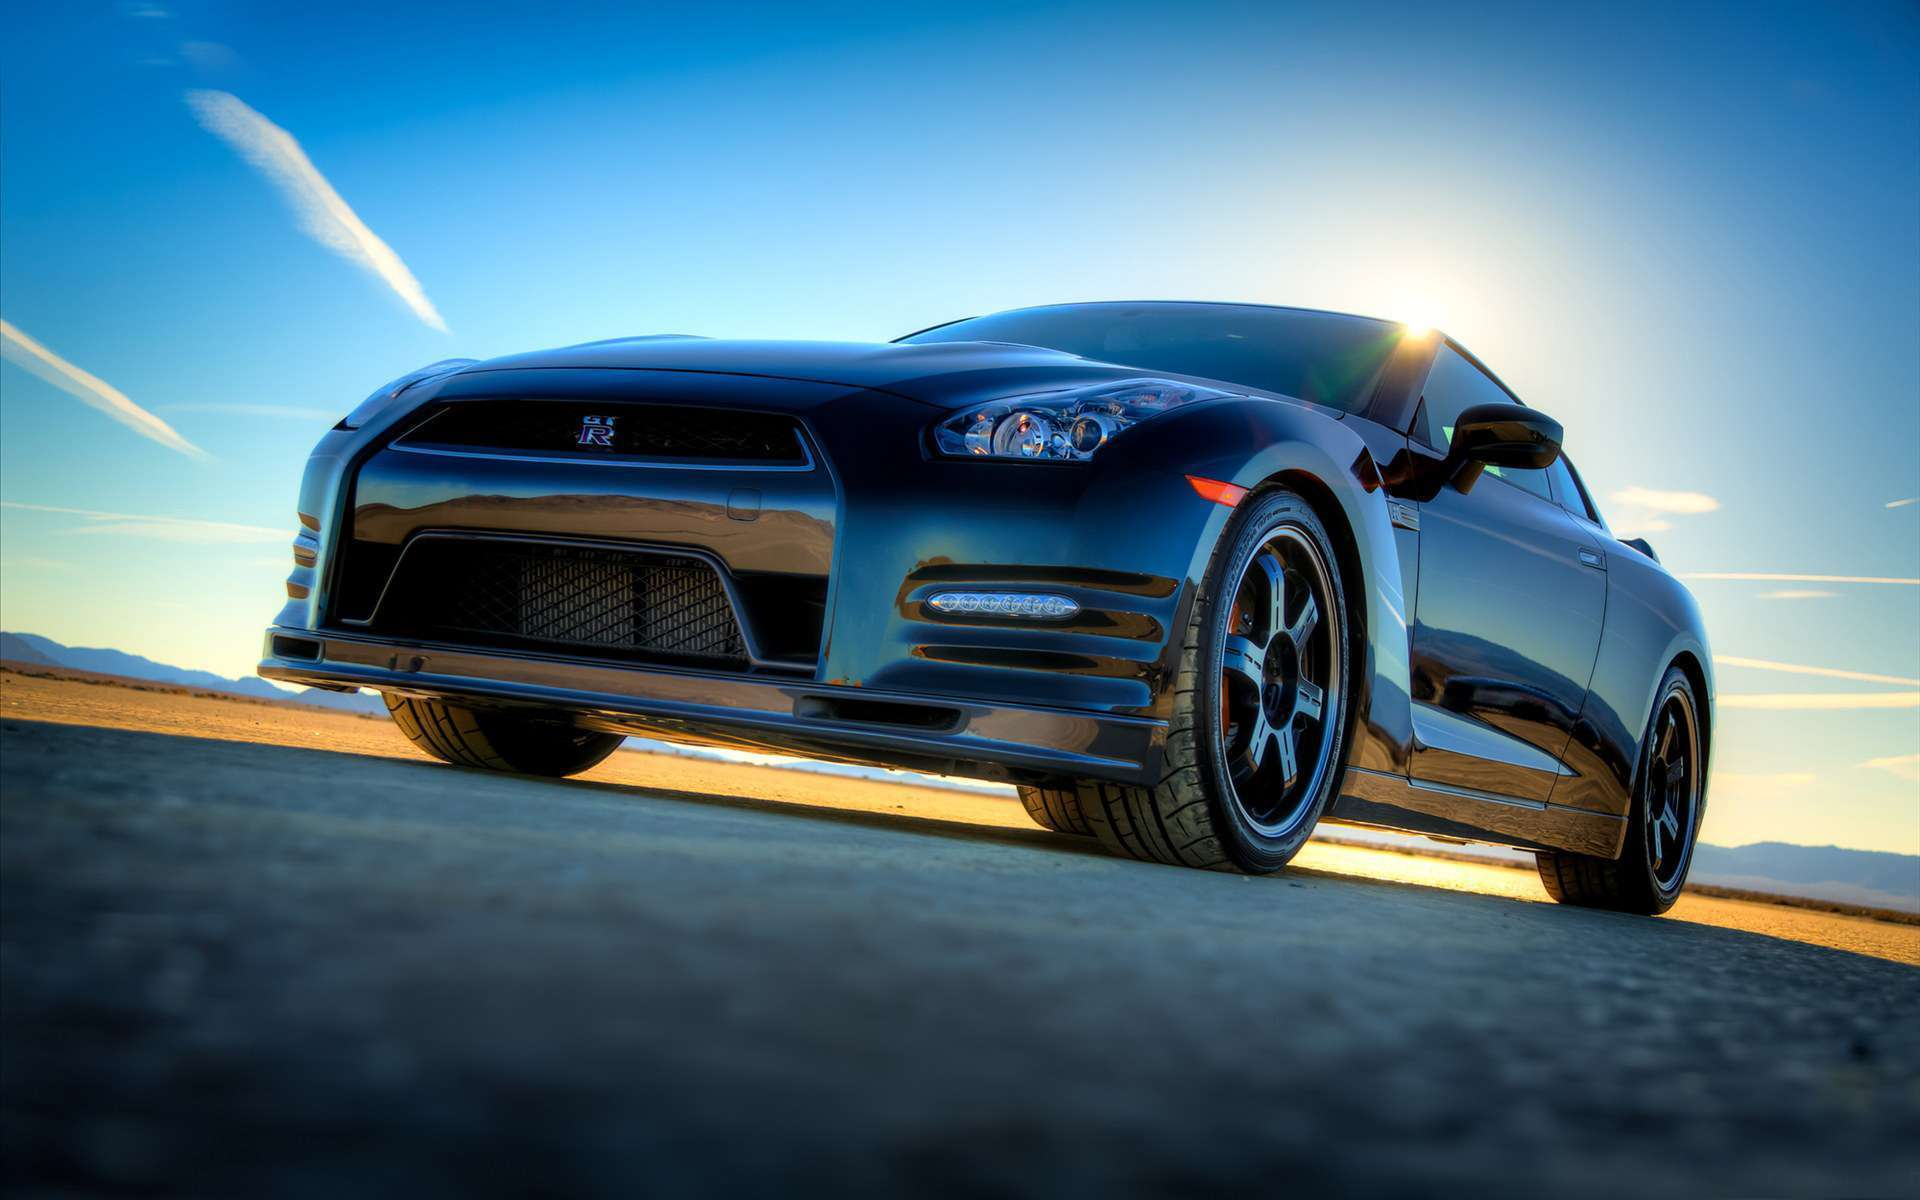 2014 Nissan Gt R Track Edition Hd Wallpapers : Hd Car ...